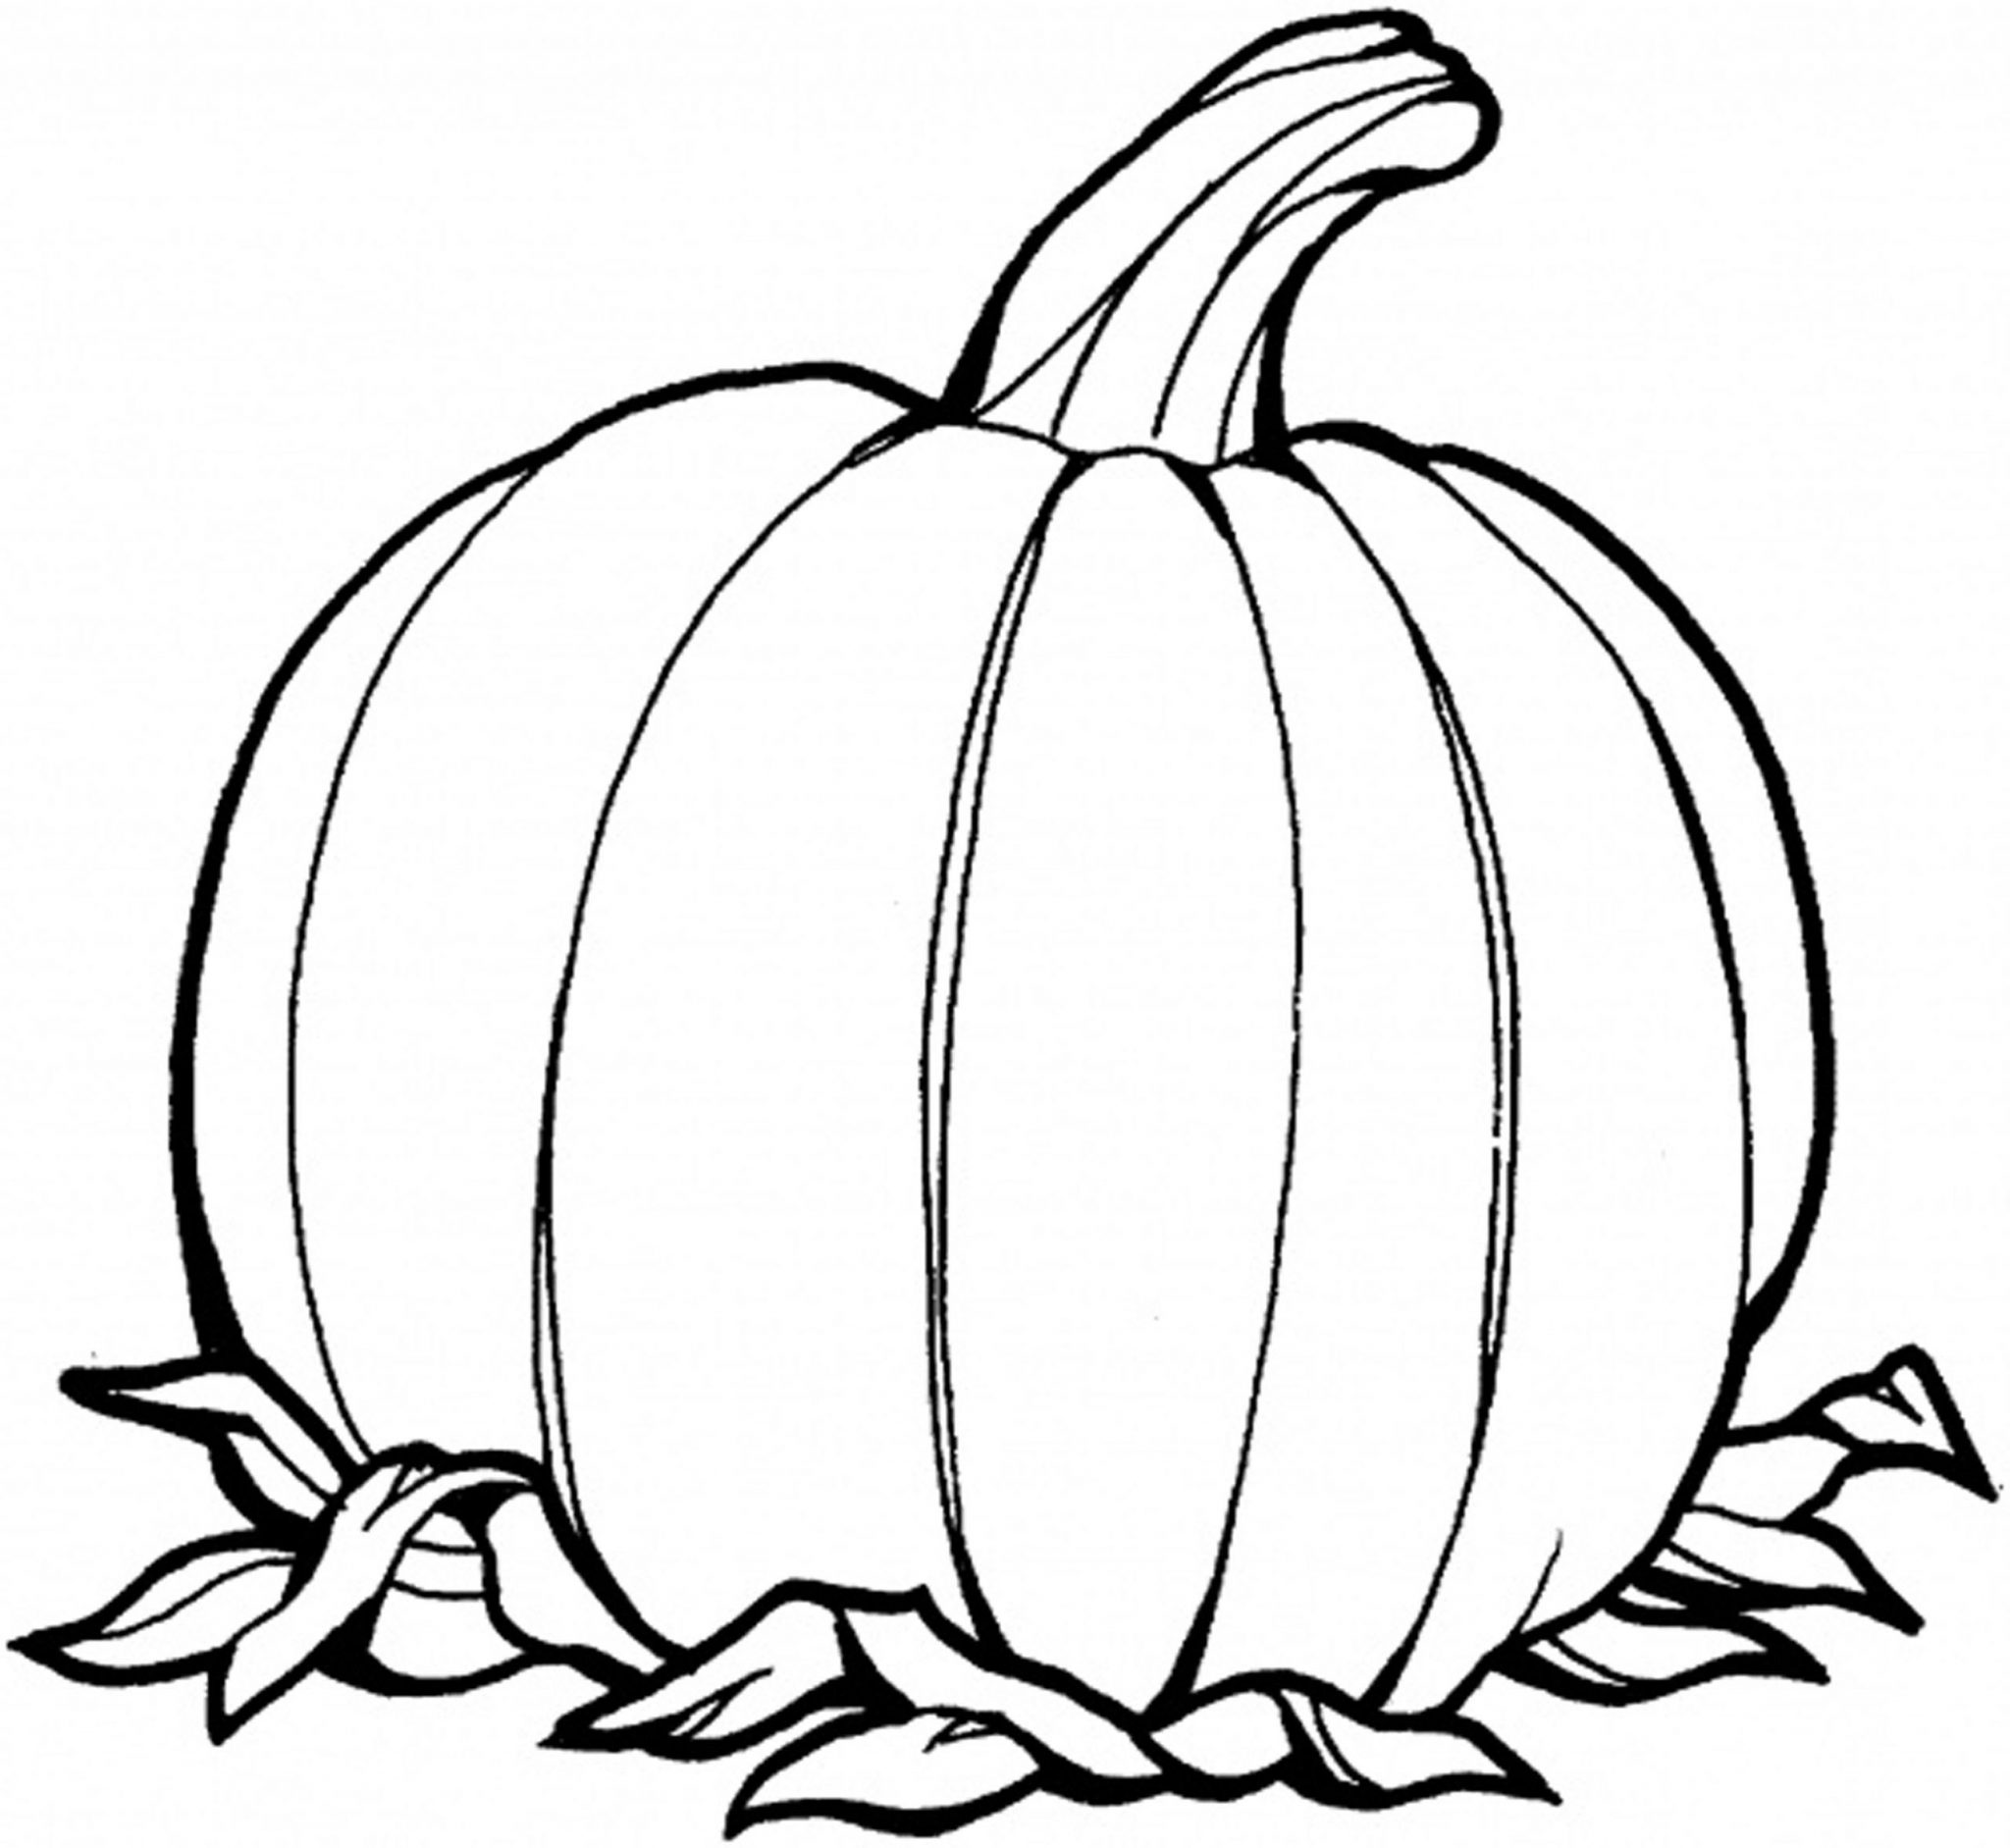 pumpkin colouring scary pumpkin coloring page free printable coloring pages colouring pumpkin